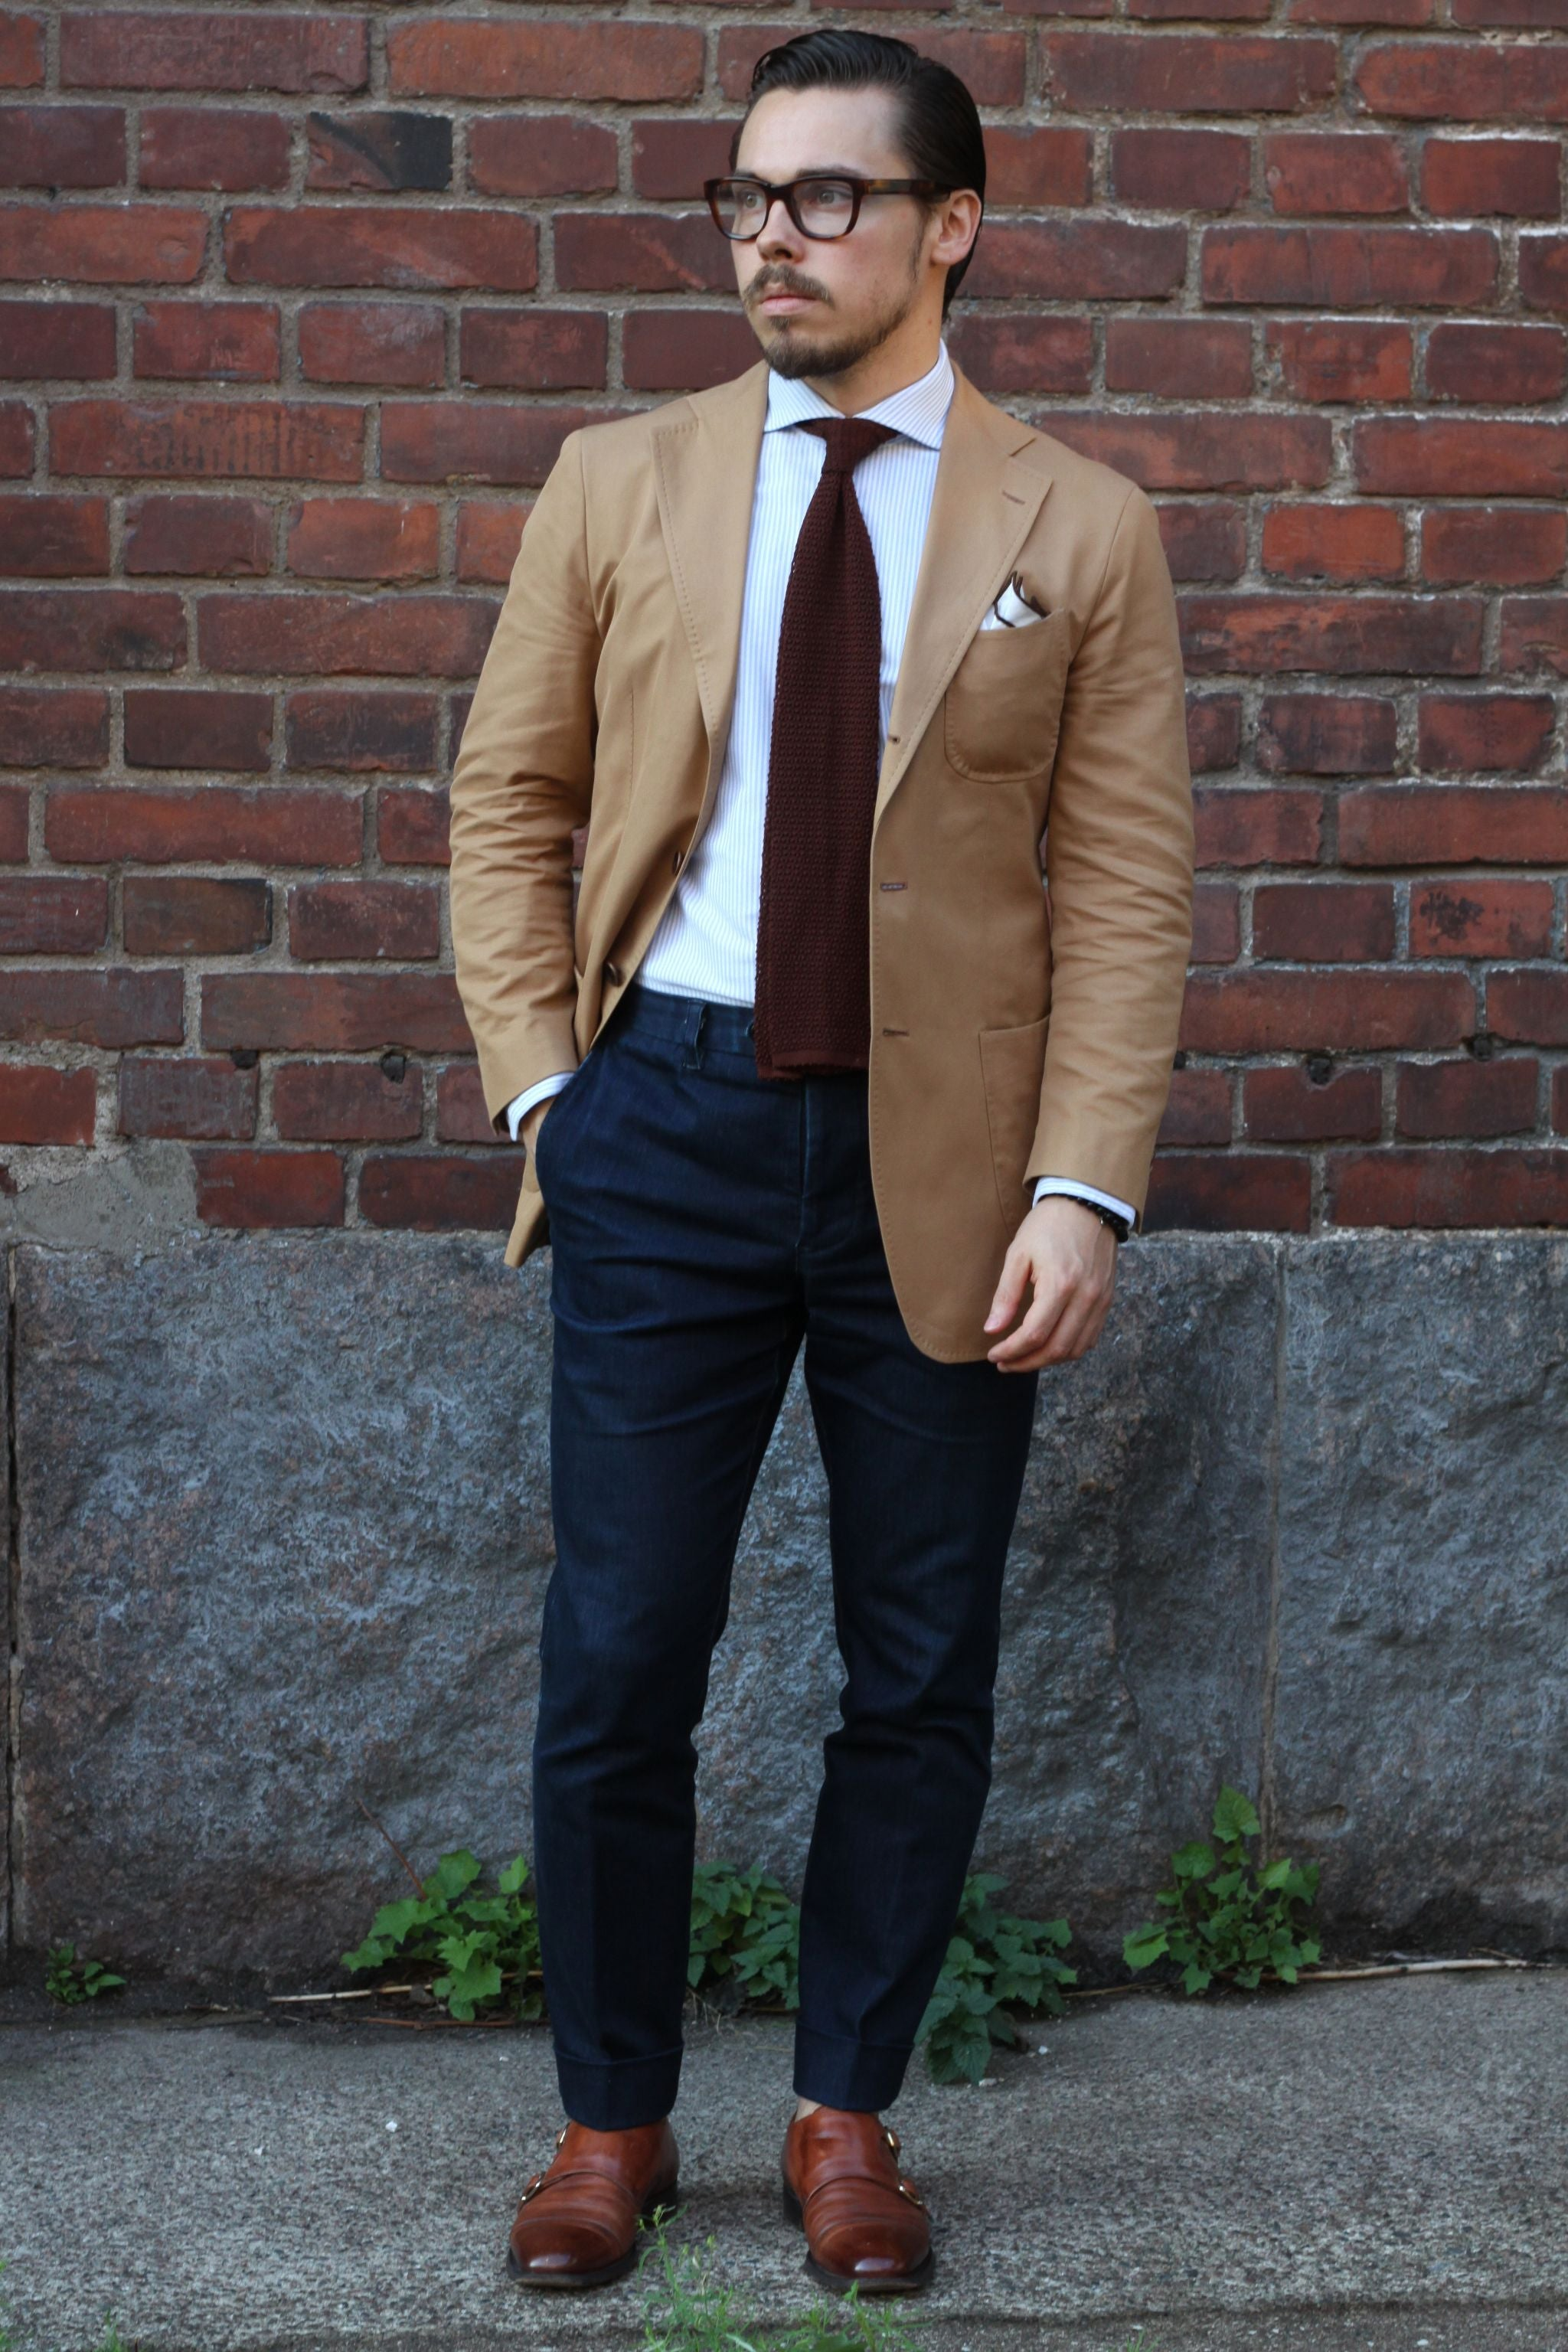 Casual cotton suit jacket as separate